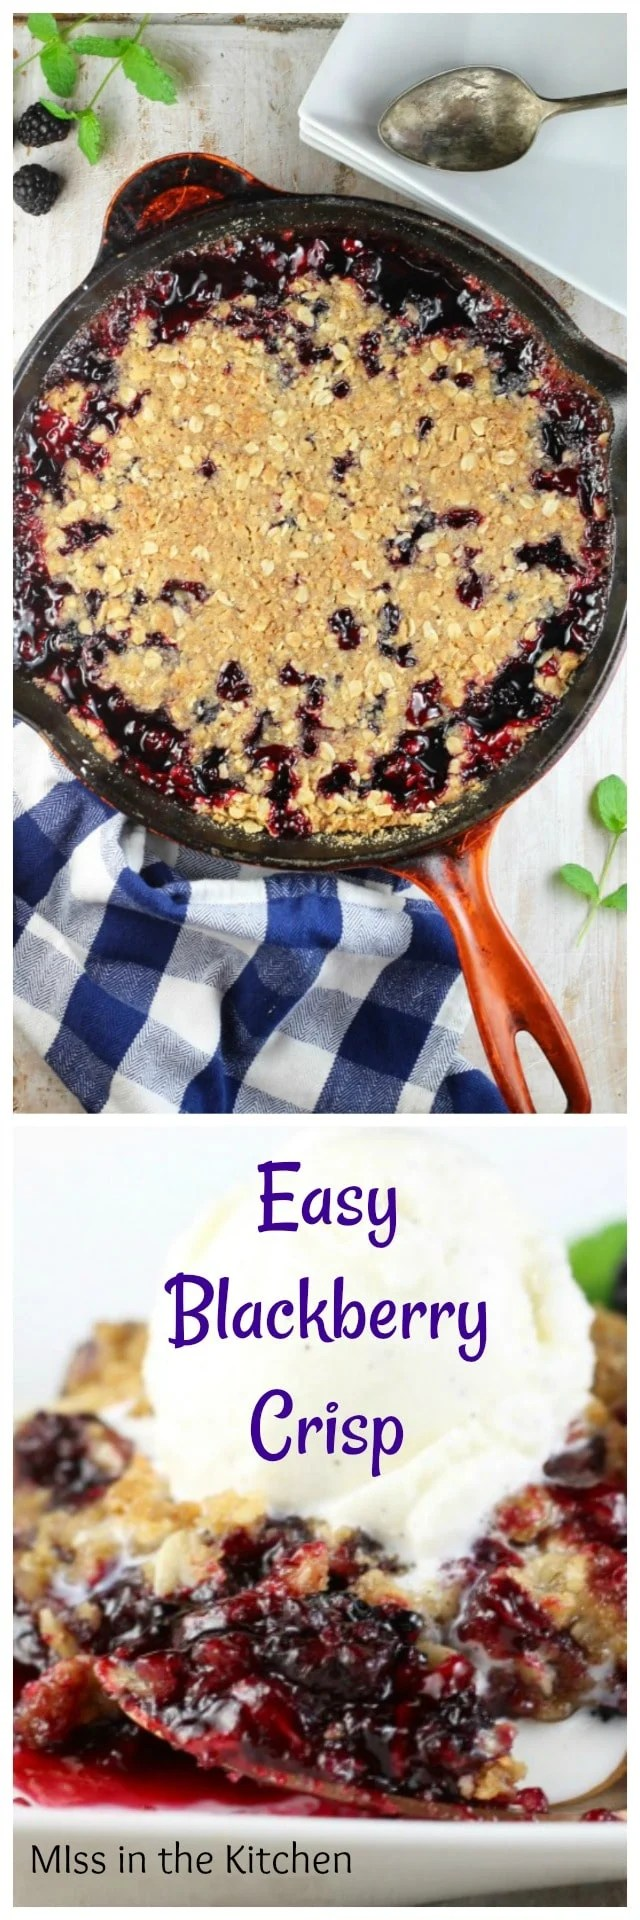 Easy Blackberry Crisp Recipe ~ simple dessert and delicious topped with vanilla ice cream from MissintheKitchen.com